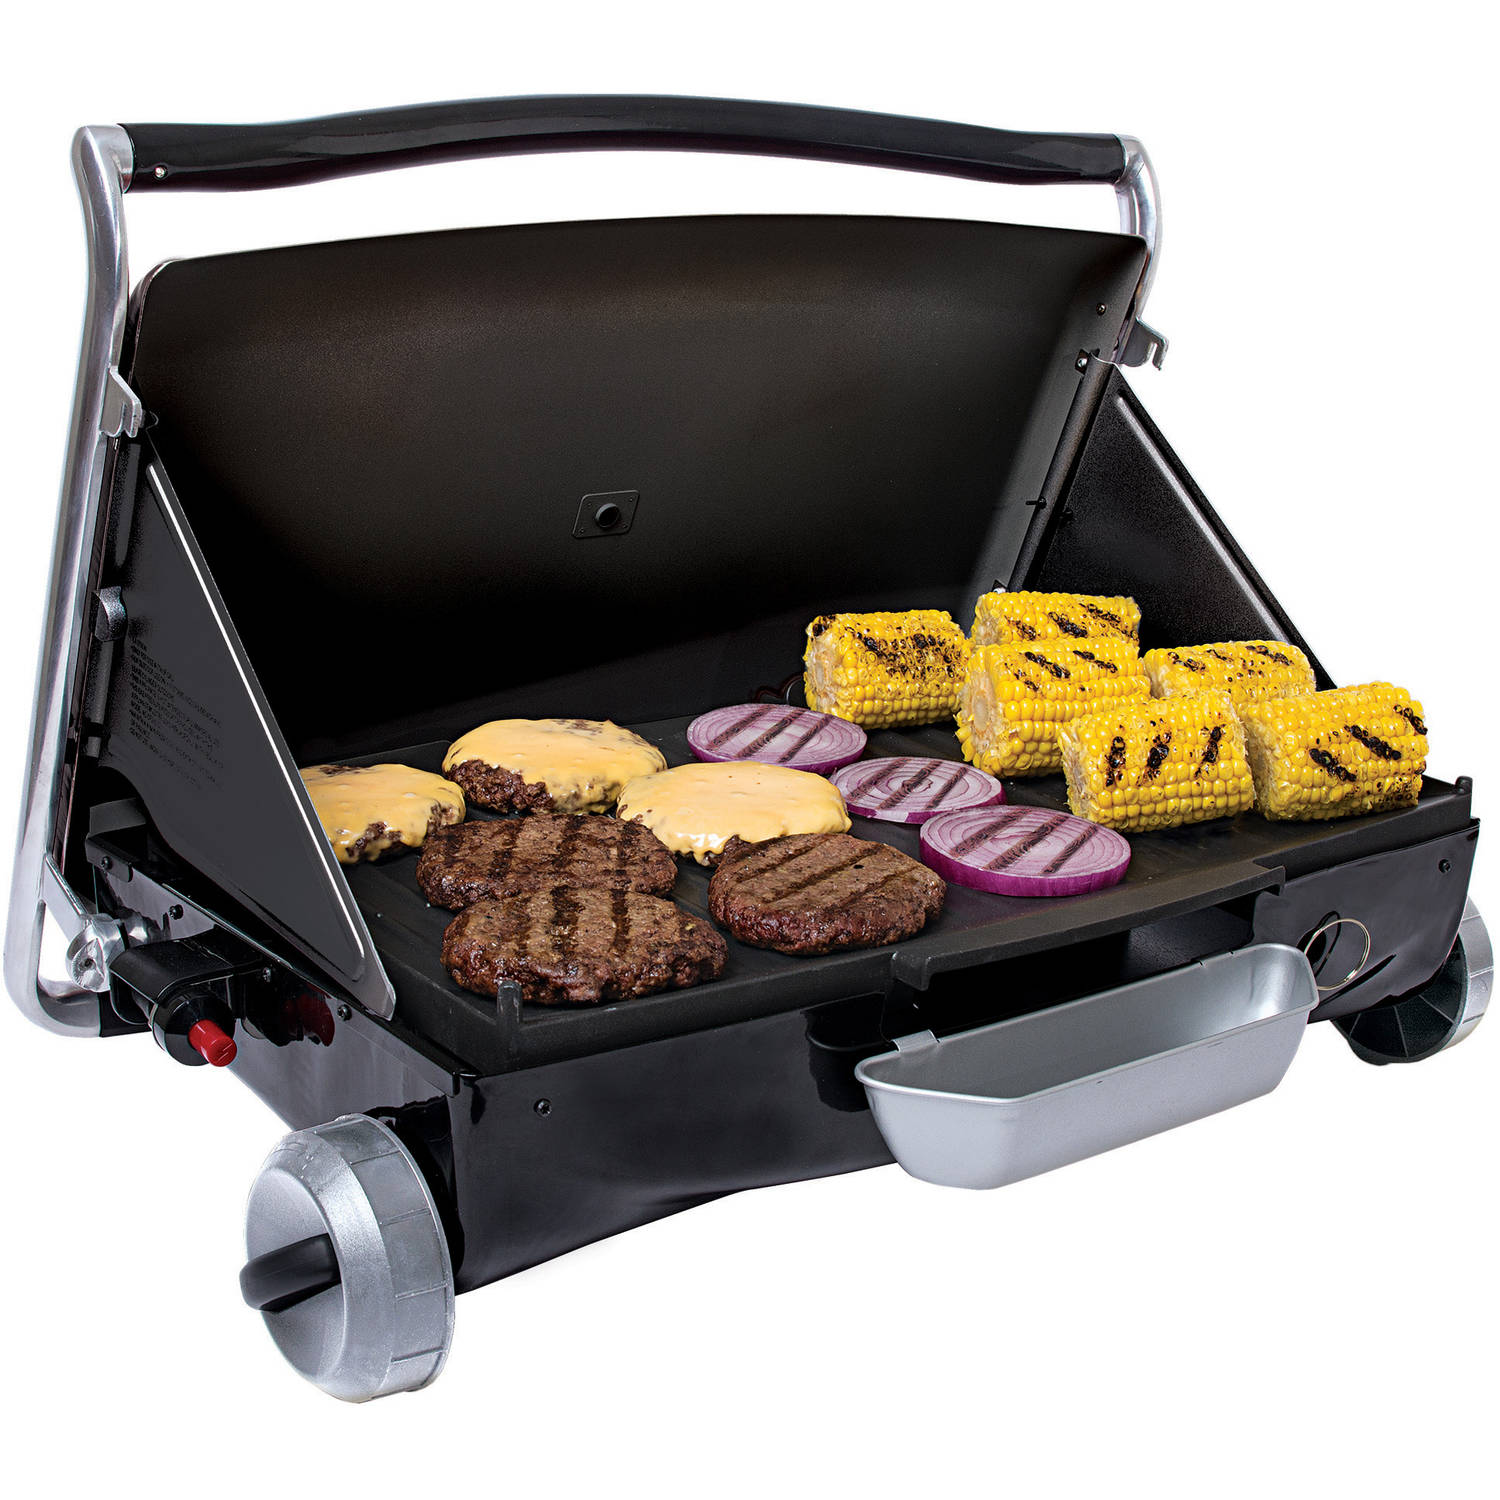 George Foreman Camp And Tailgate Portable Propane Grill, GP200R    Walmart.com